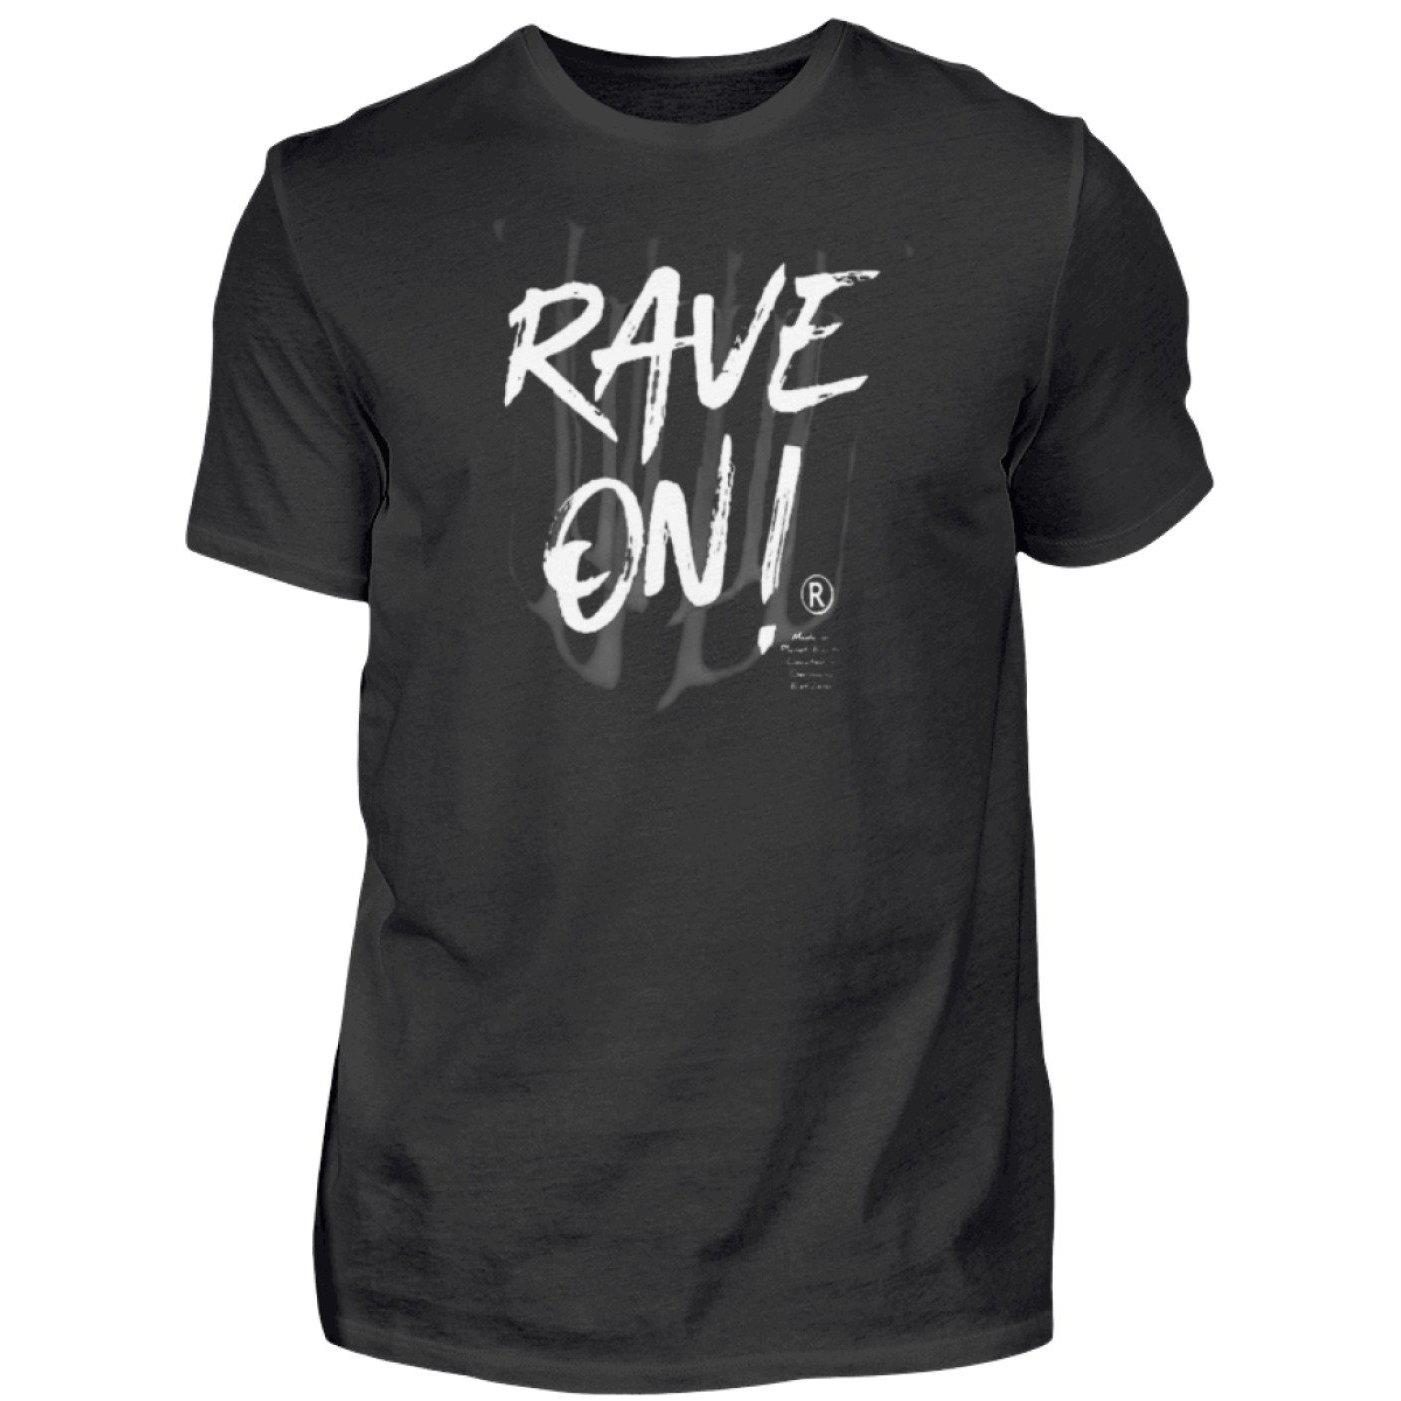 Rave On!® - Made On Planet Earth B2k20 - Herren Premiumshirt-Herren Premium Shirt-Black-S-Rave-On! I www.rave-on.shop I Deine Rave & Techno Szene Shop I brand, Design - Rave On!® - Made On Planet Earth B2k20, Global recommendation, madeonpr, marke, on, rave, raver, techno - Sexy Festival Streetwear , Clubwear & Raver Style